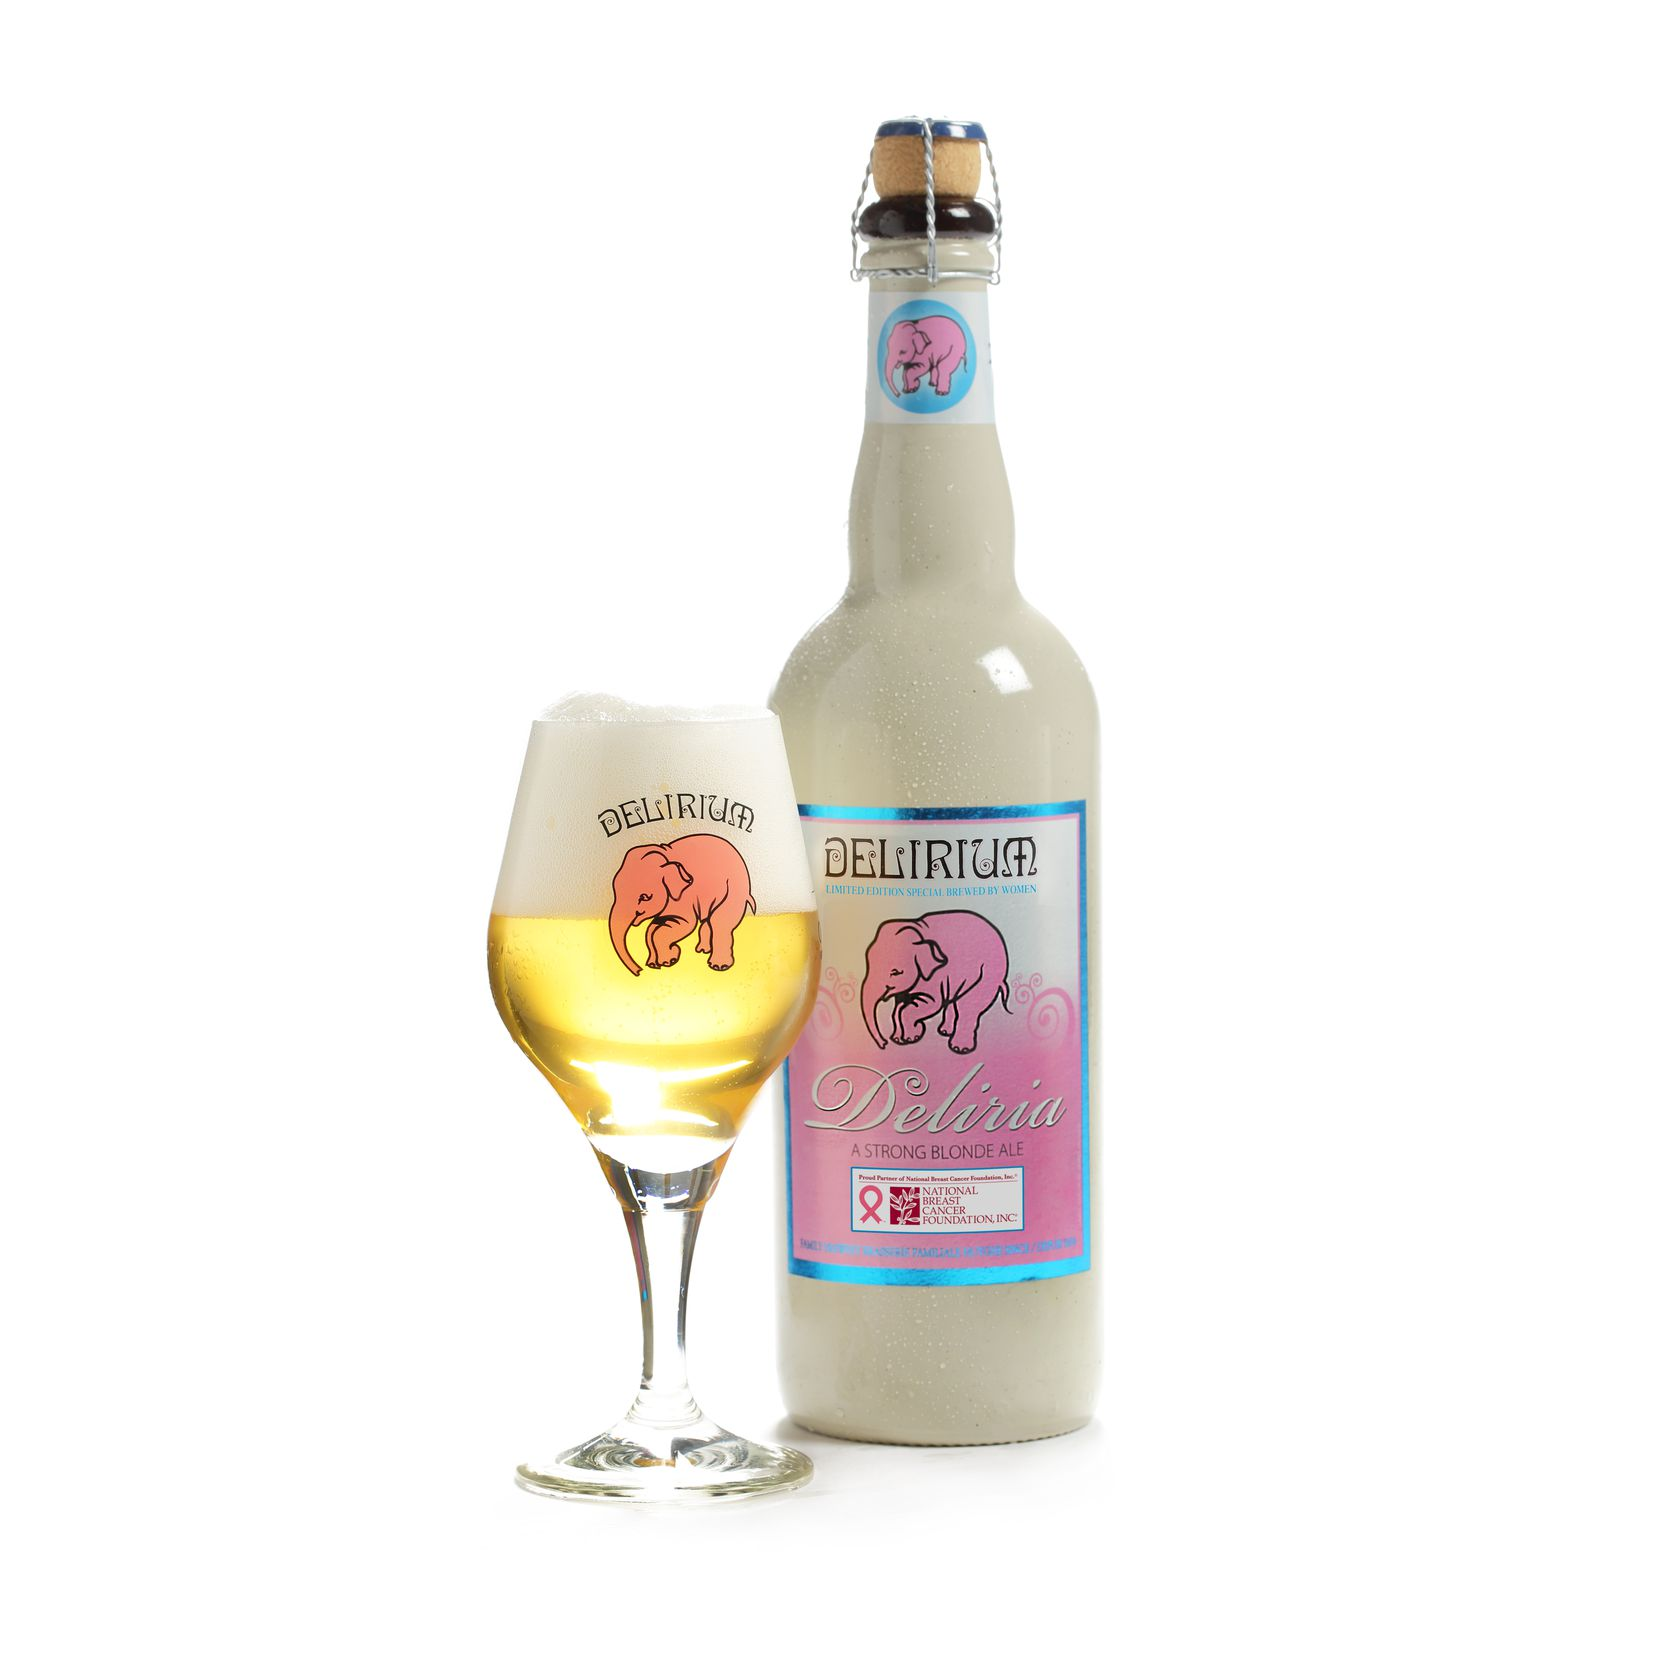 Deliria is classified as a strong Belgian blond ale and is made every year by a team of female brewers at the Huyghe Brewery in Melle, Belgium.